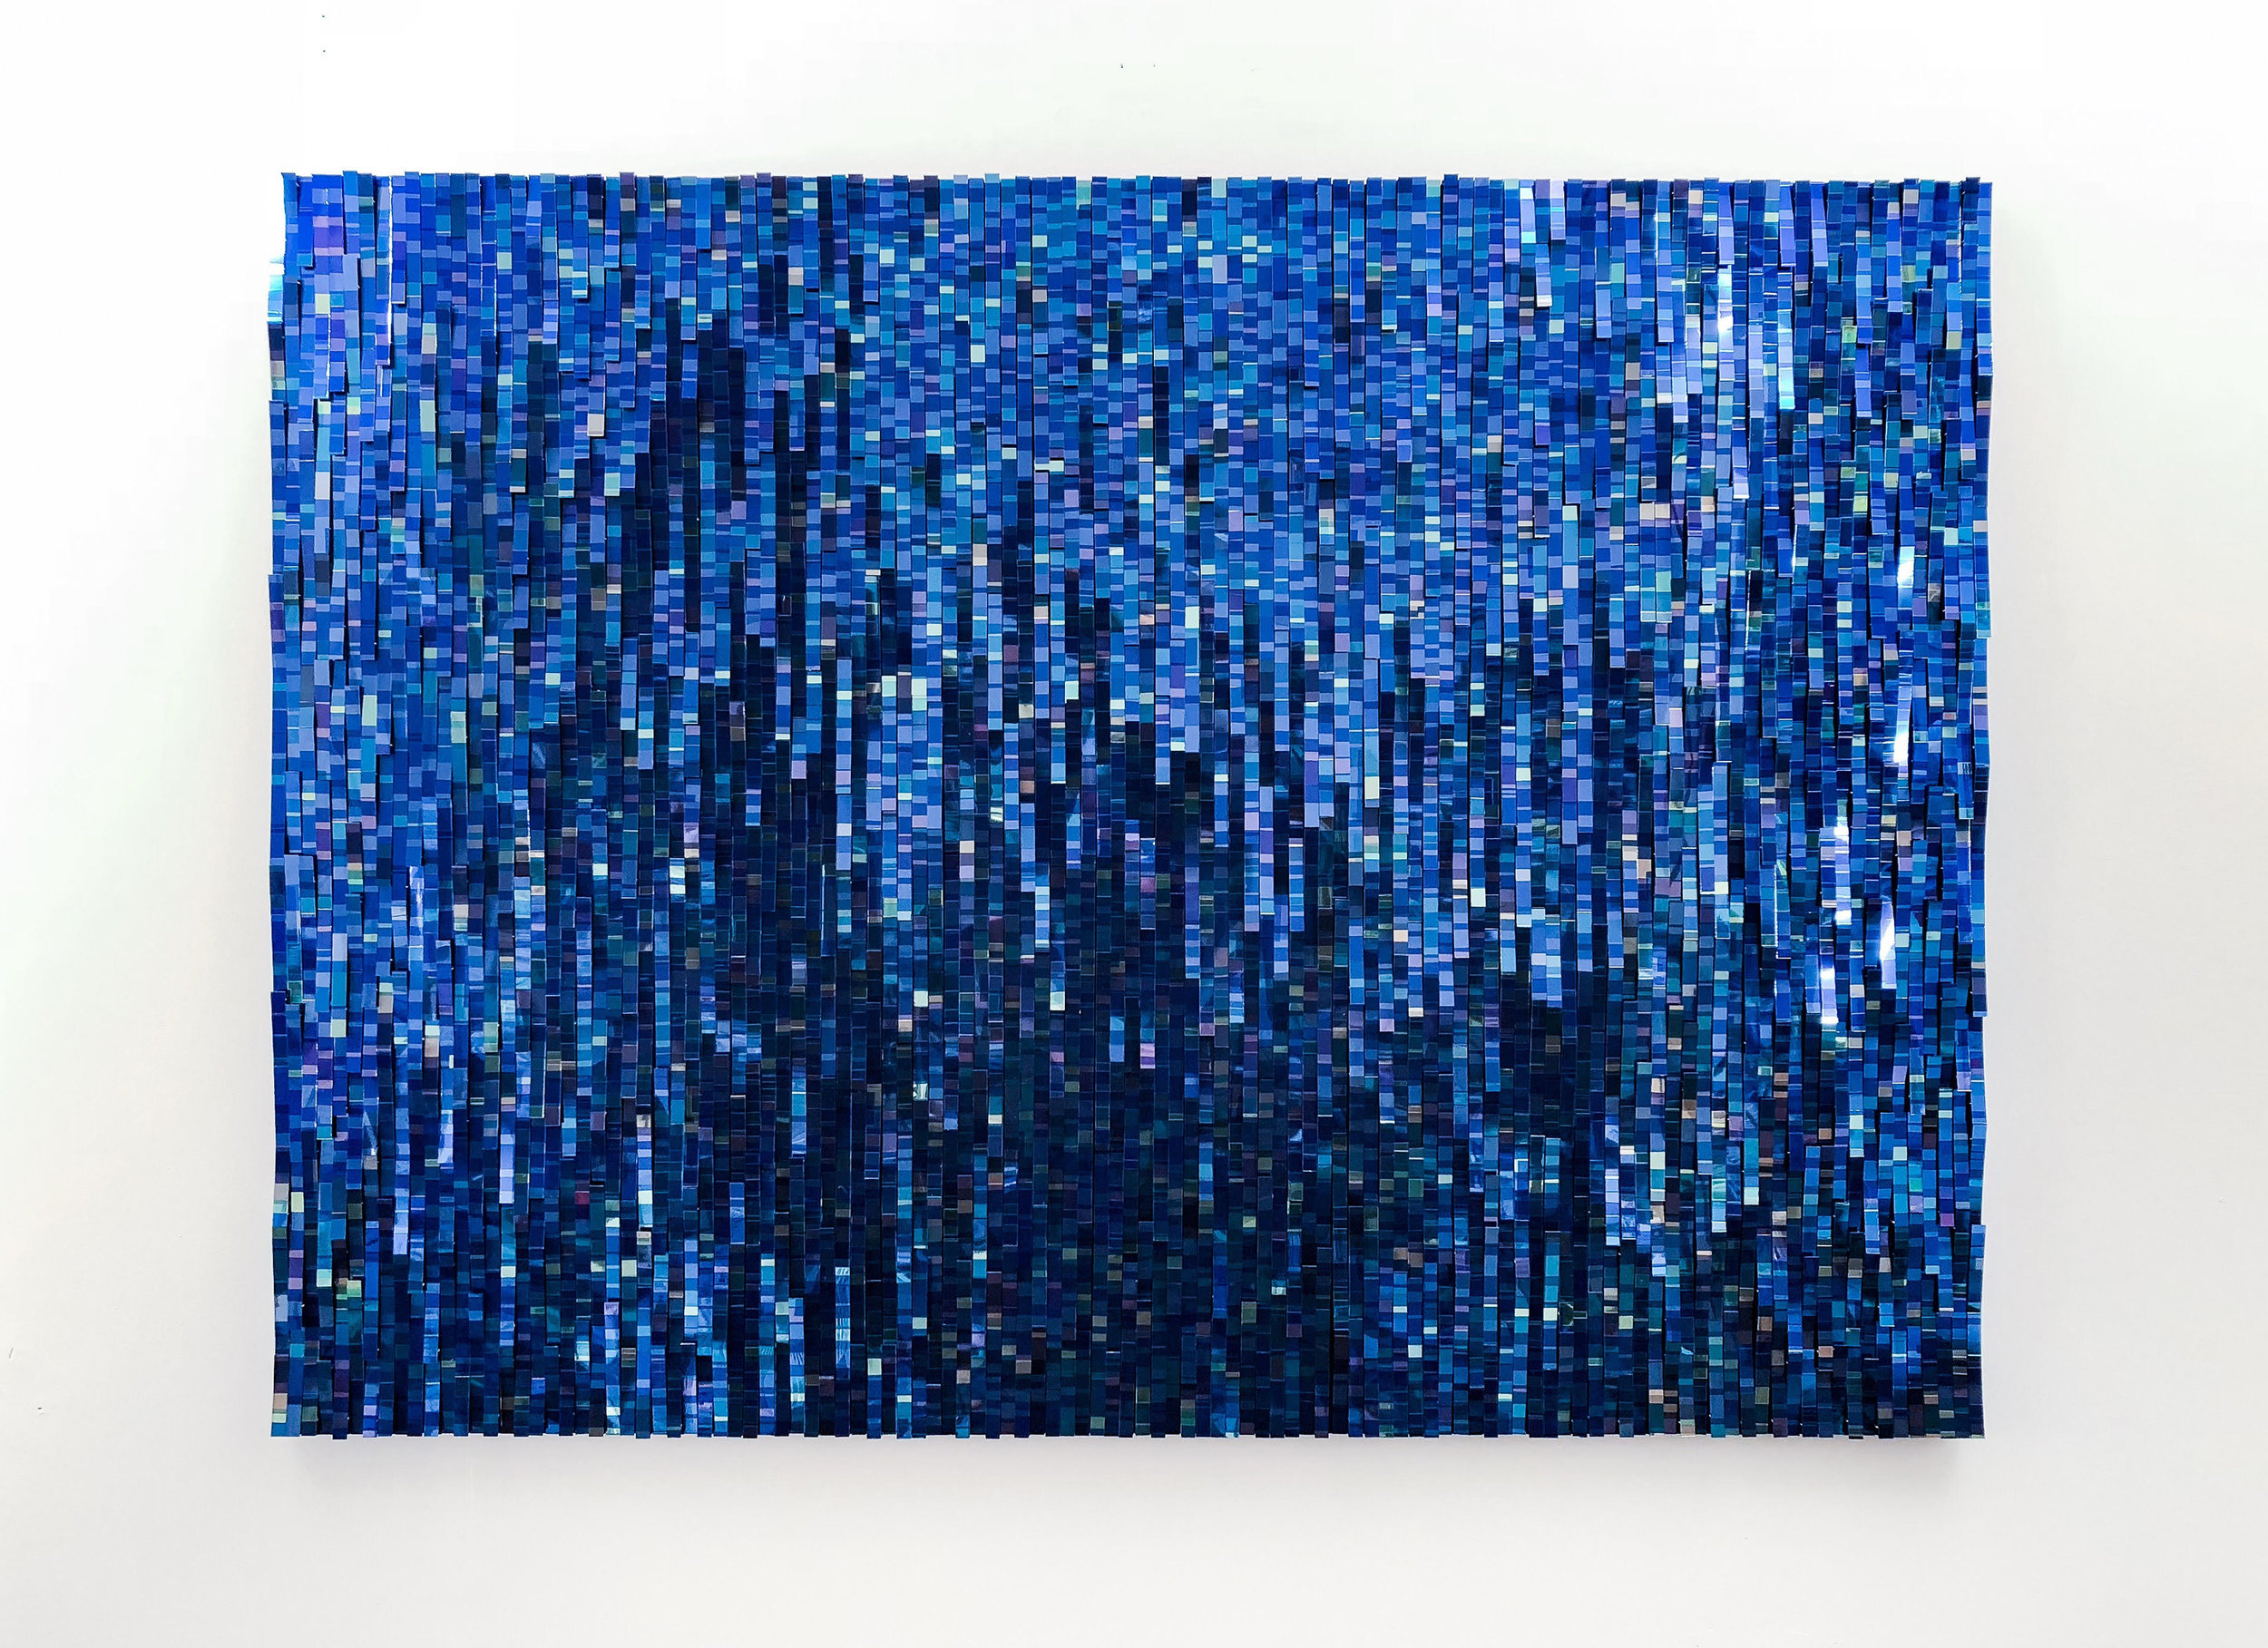 Blue Bits (2018), Mixed media on wood panel, 36 x 49 inches